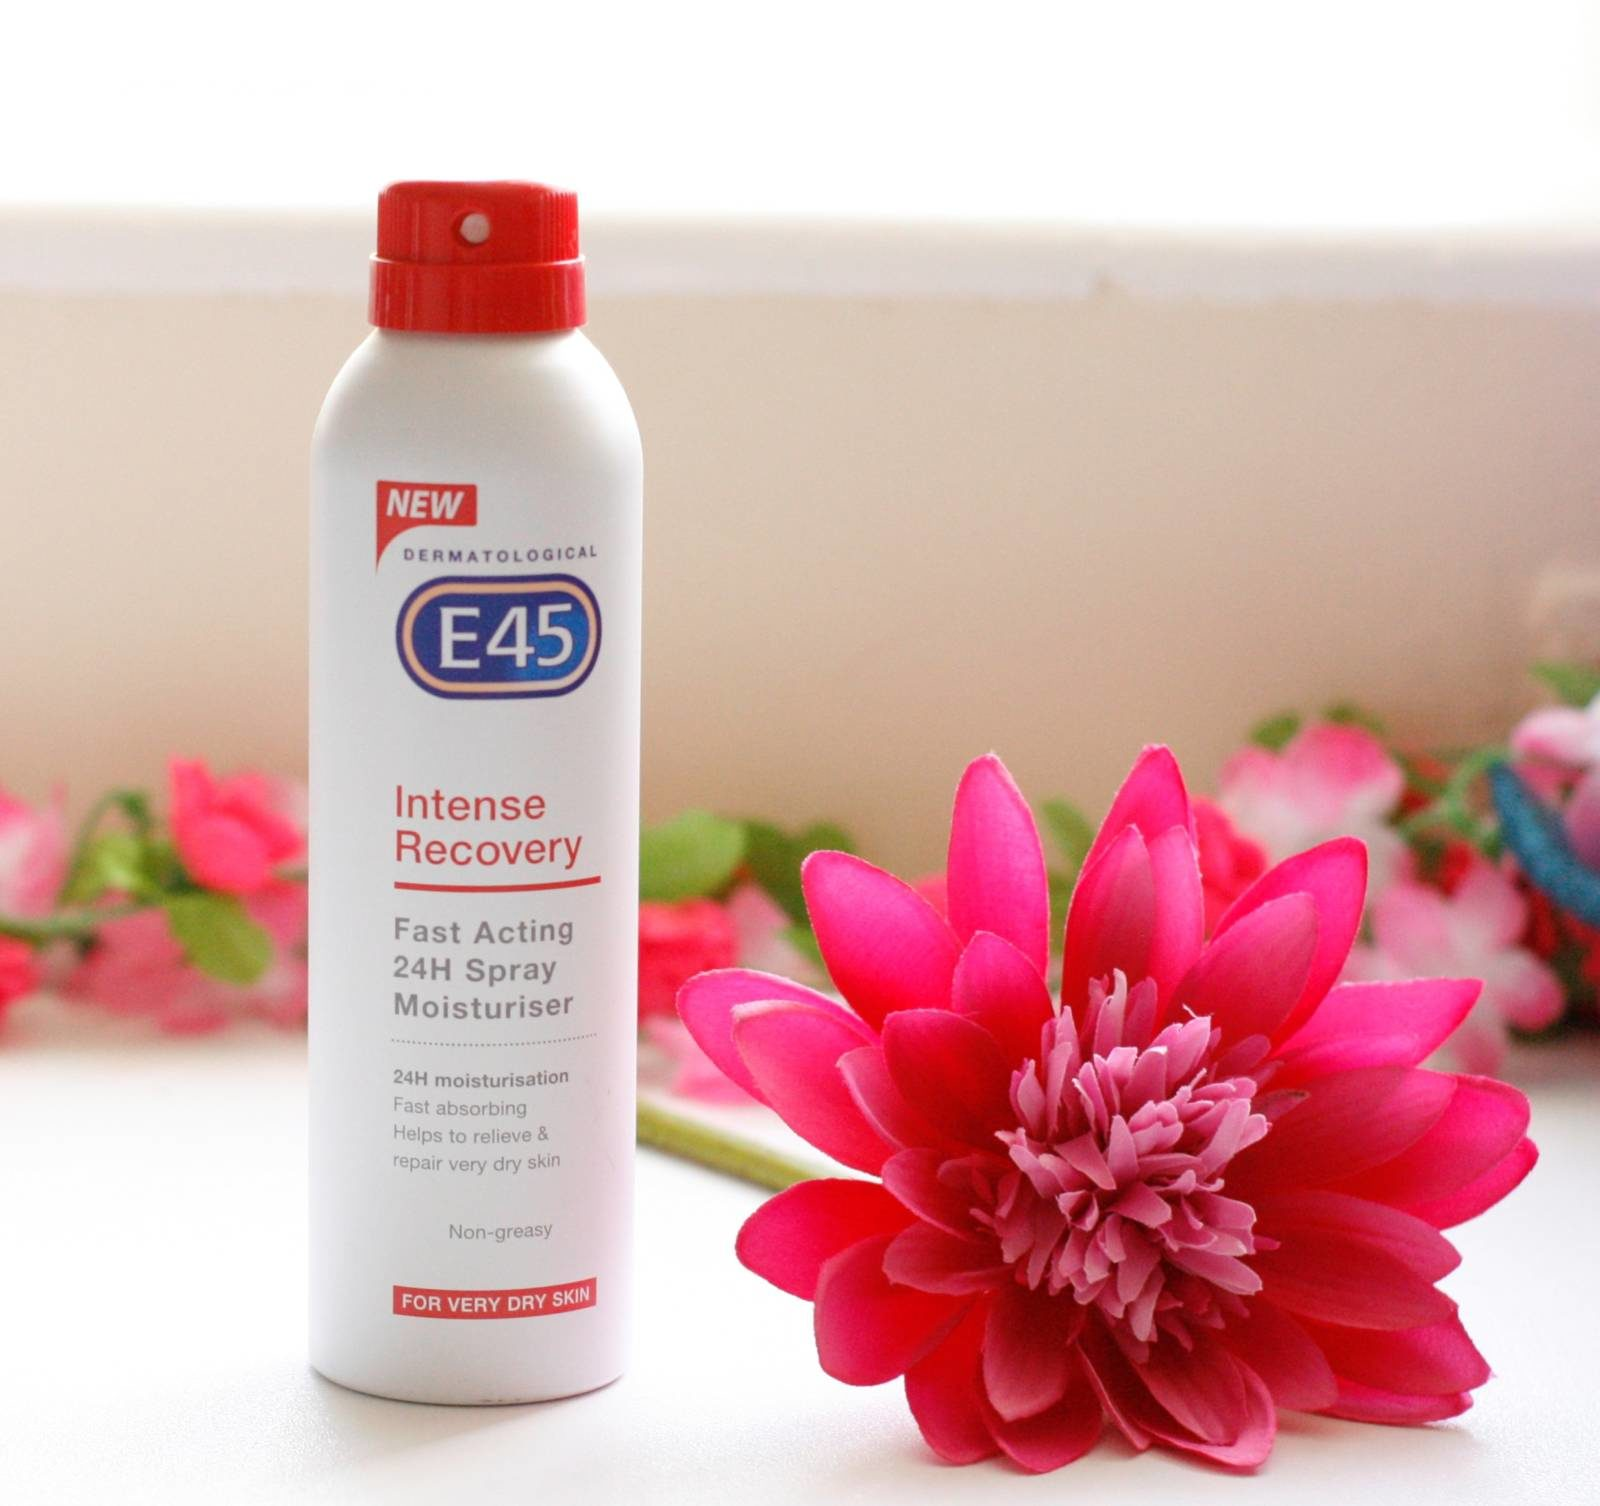 E45 Intense Recovery Fast Acting 24H Spray Moisturiser Review